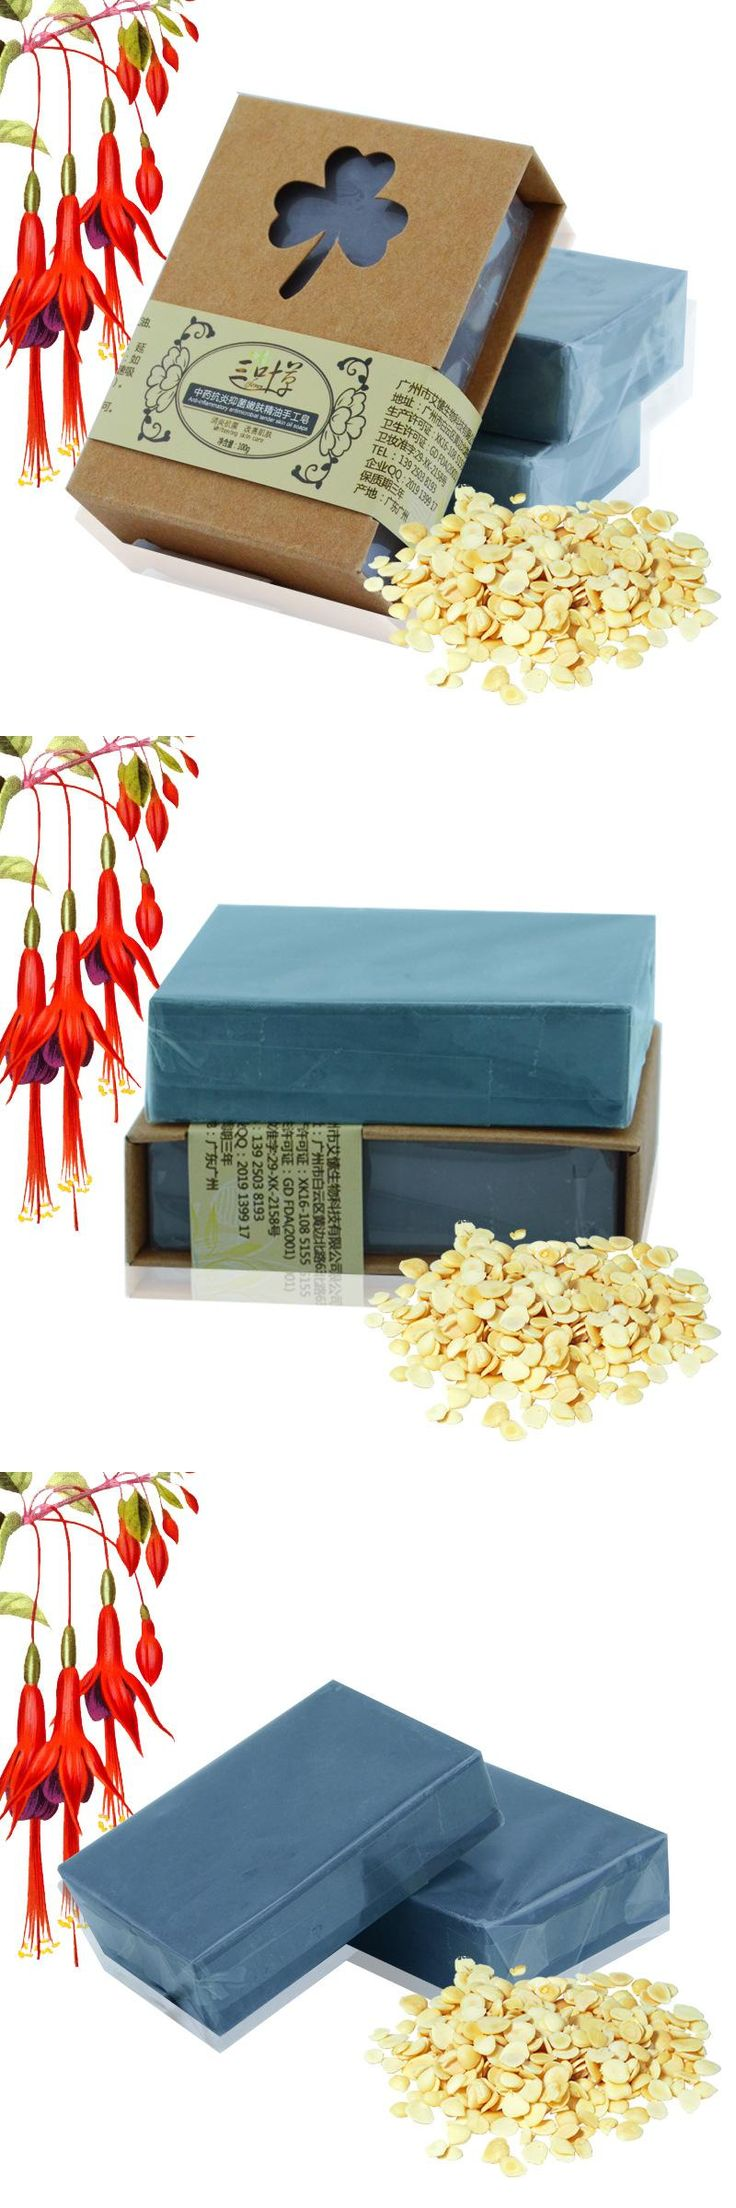 [Visit to Buy] 100g Chinese Herbal Handmade Soap Remove Nose Blackhead Kill Mites Close Pores Cleansing  Facial Soap Free Shipping #Advertisement